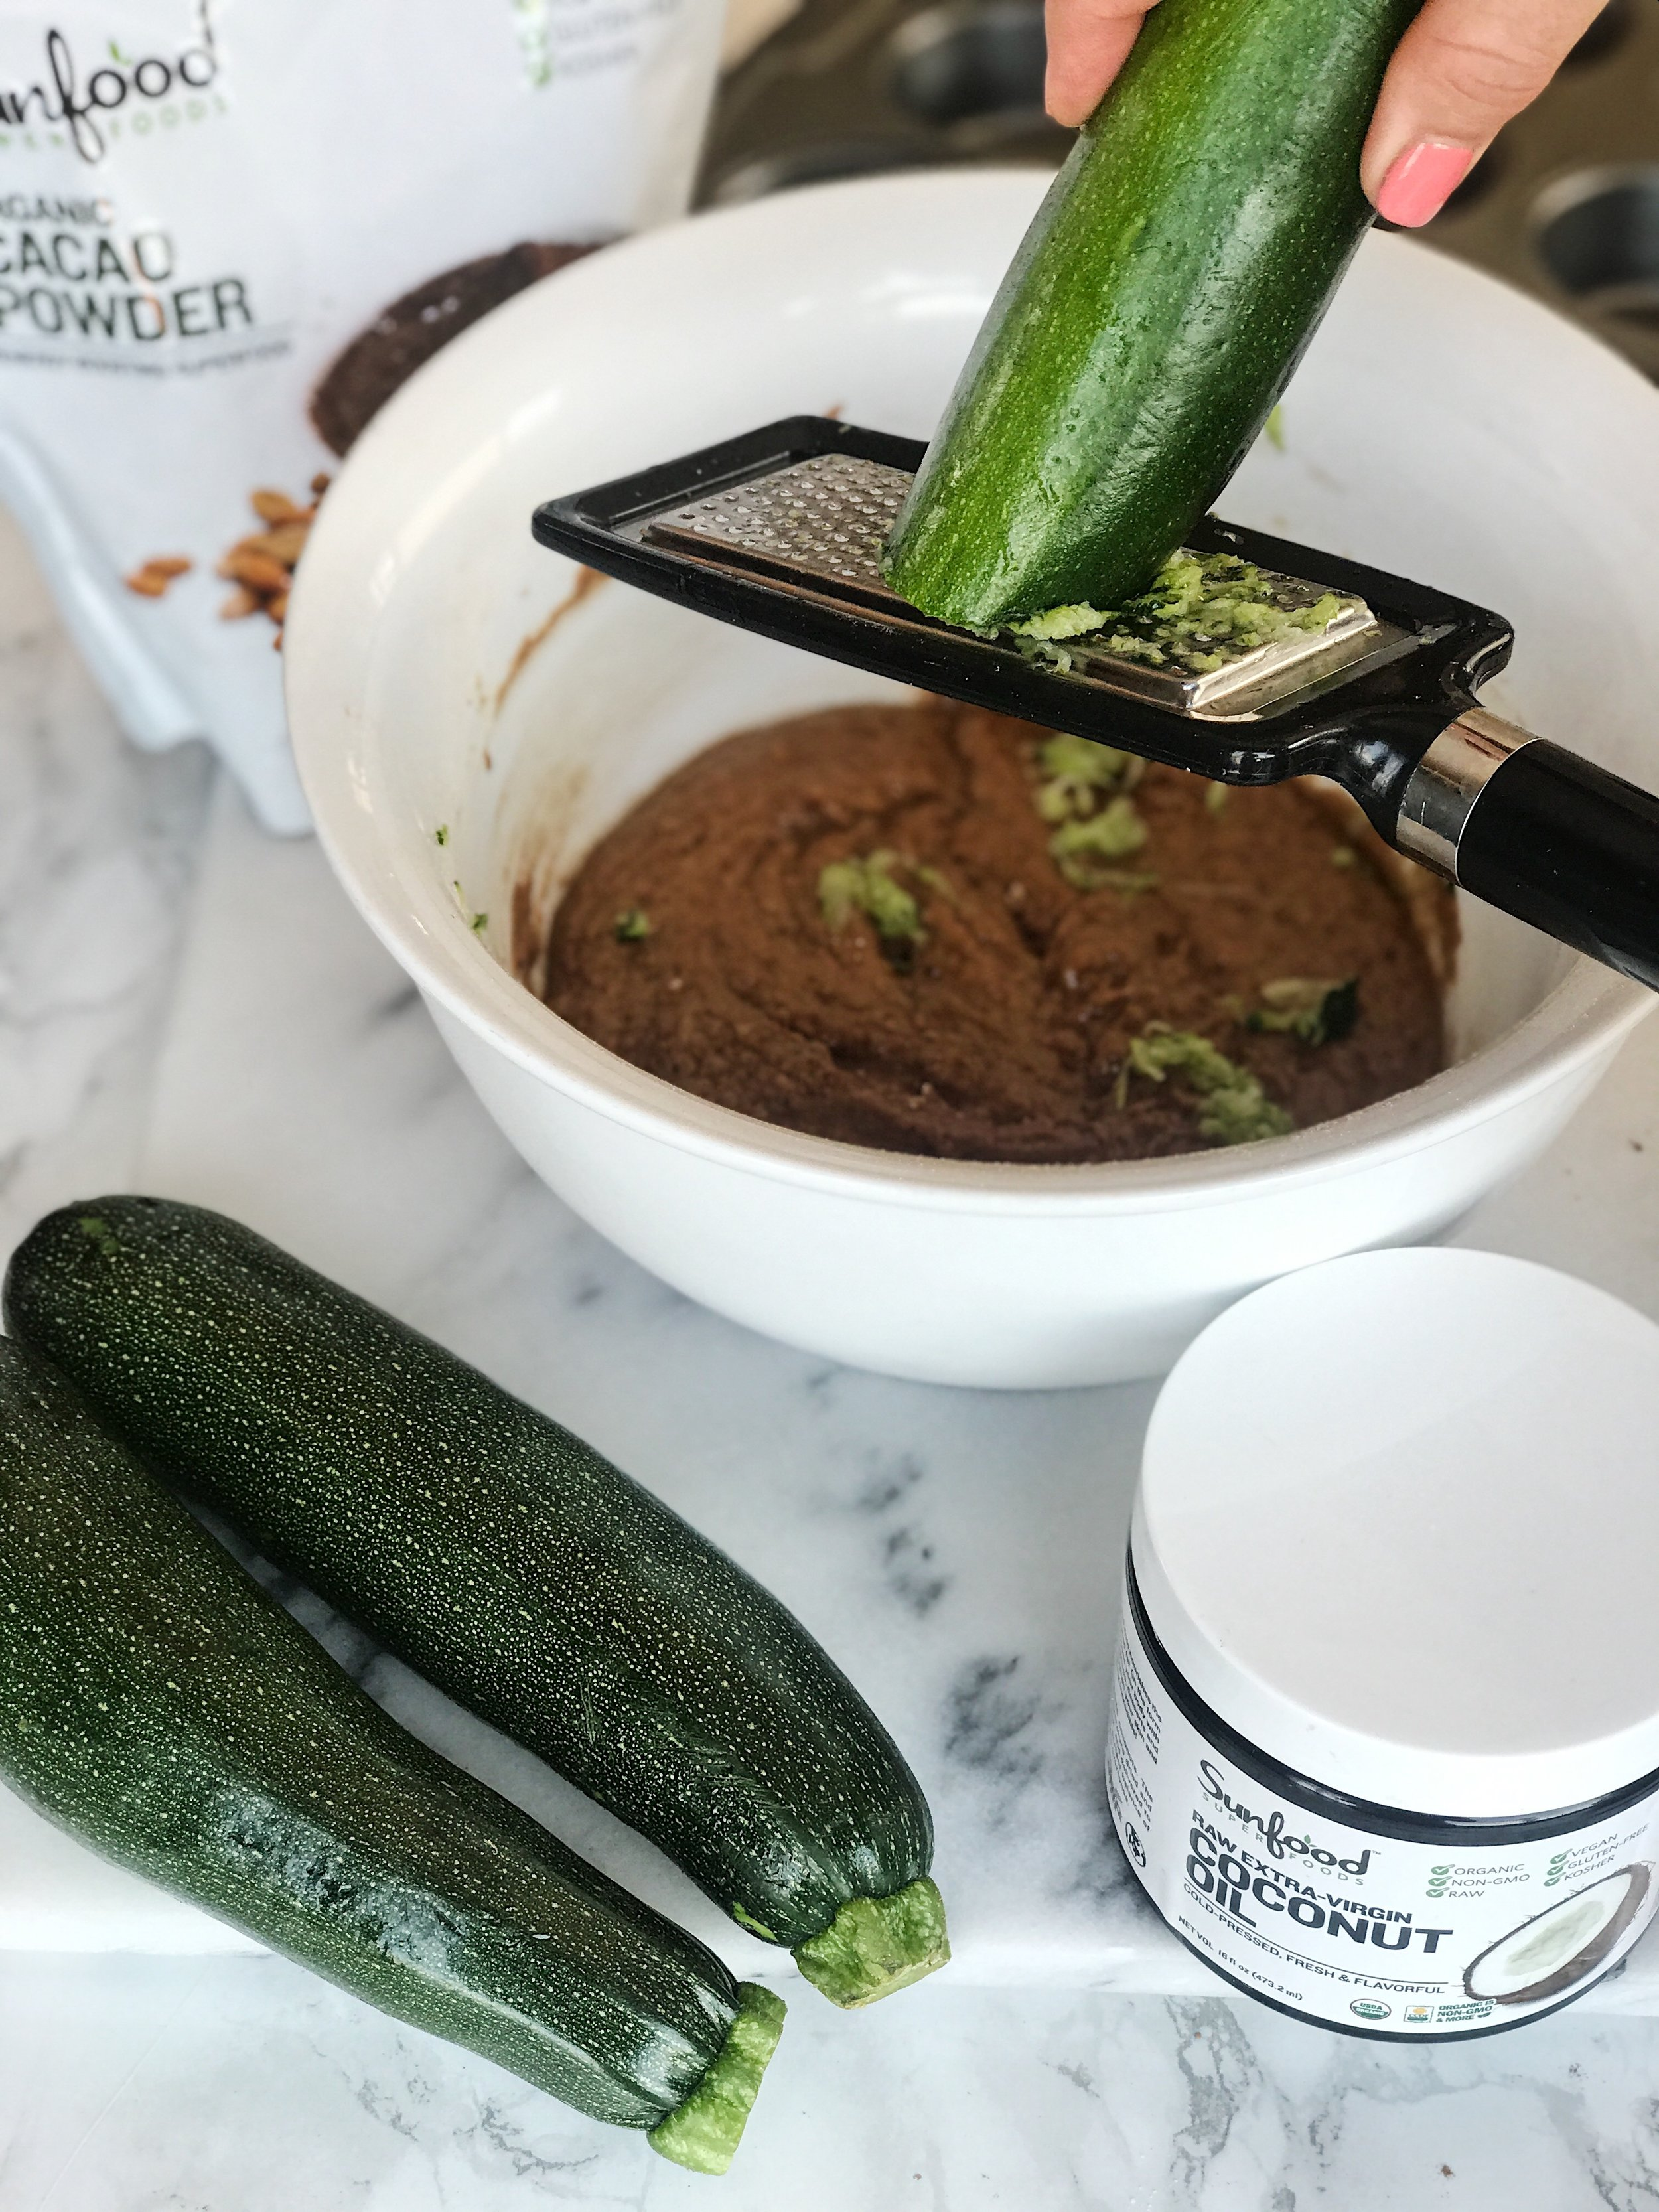 - You will then want to add your grated zucchini.